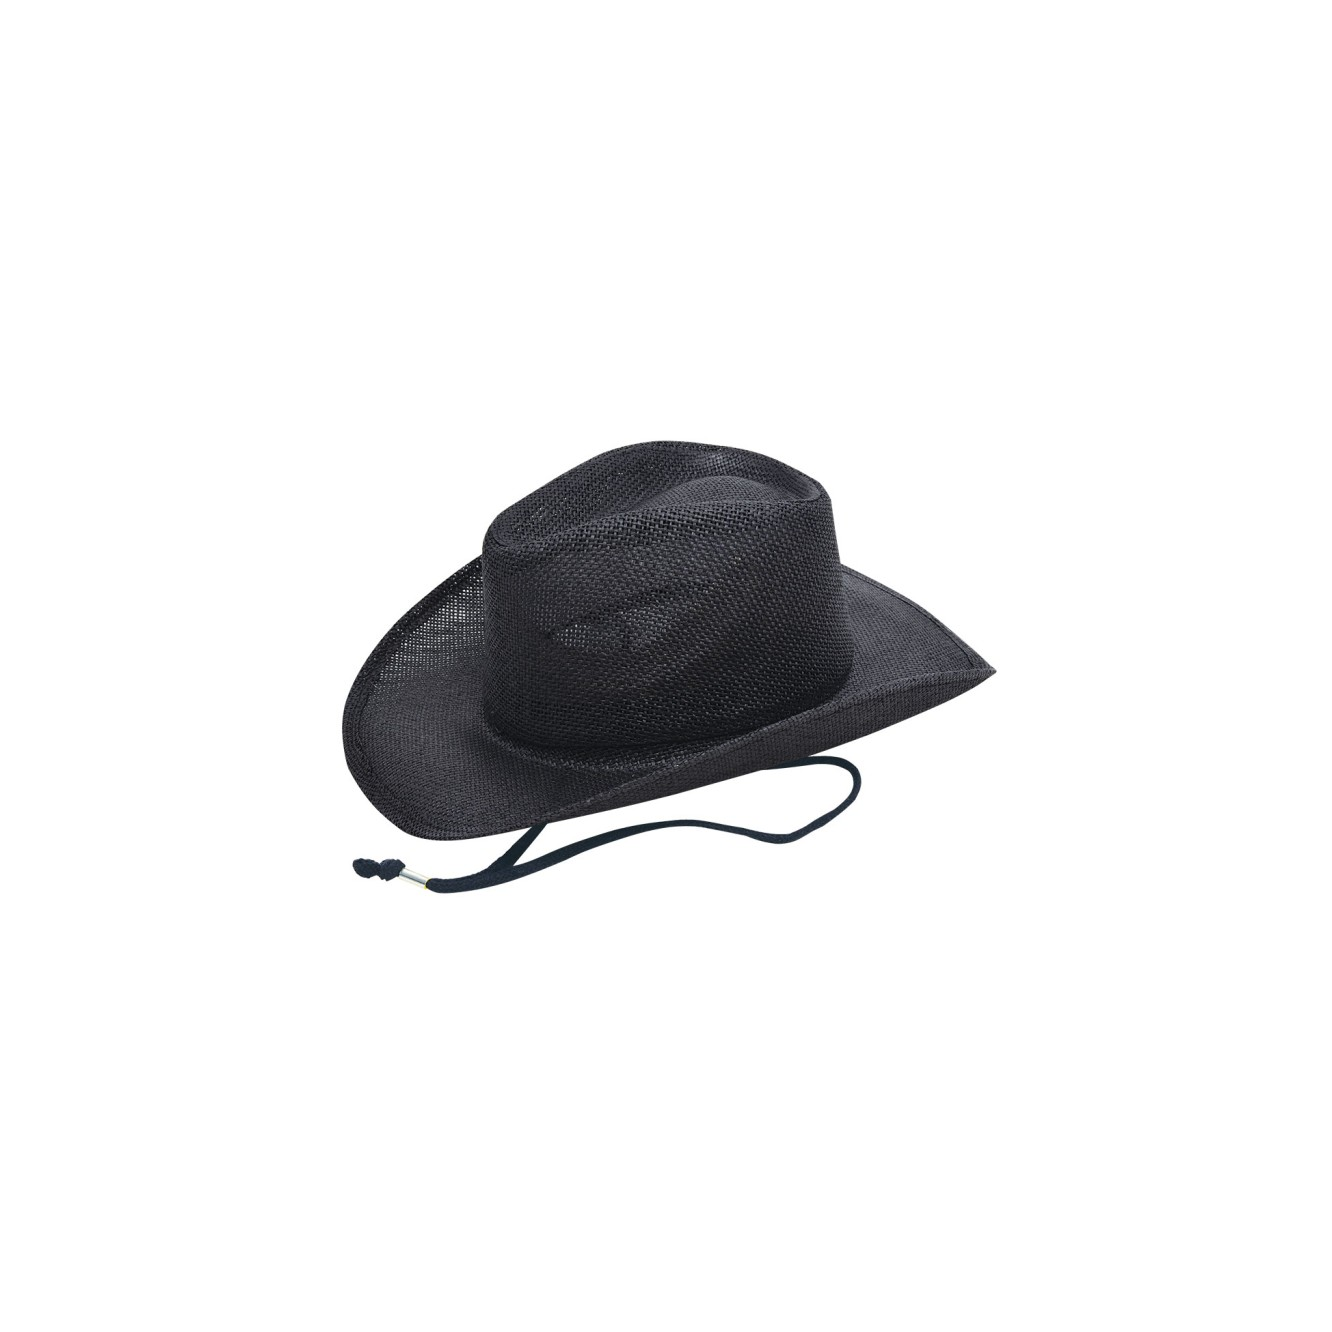 Cowboy hat with cord